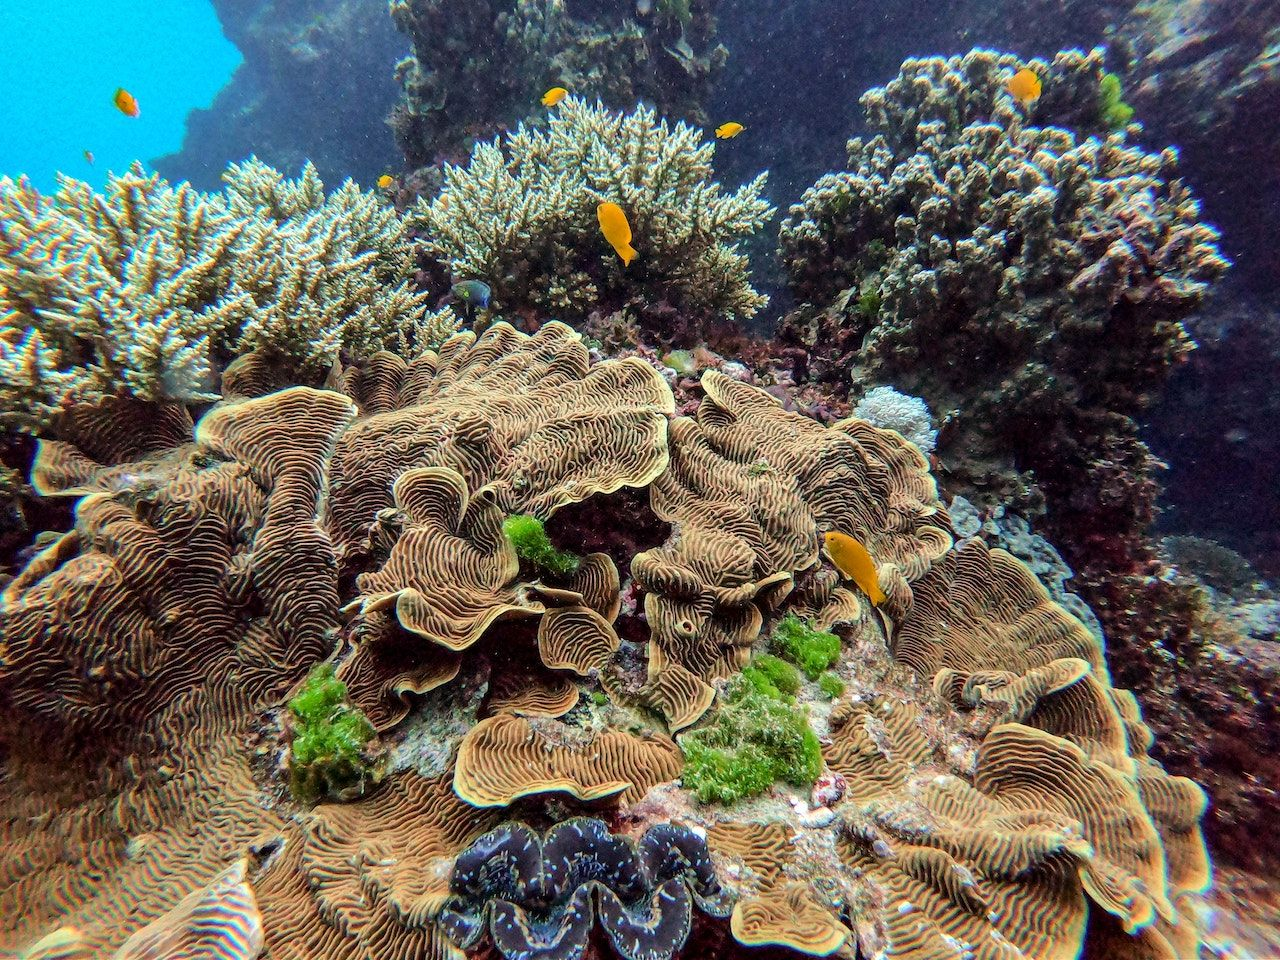 Take a Virtual Dive Through The Great Barrier Reef with David Attenborough